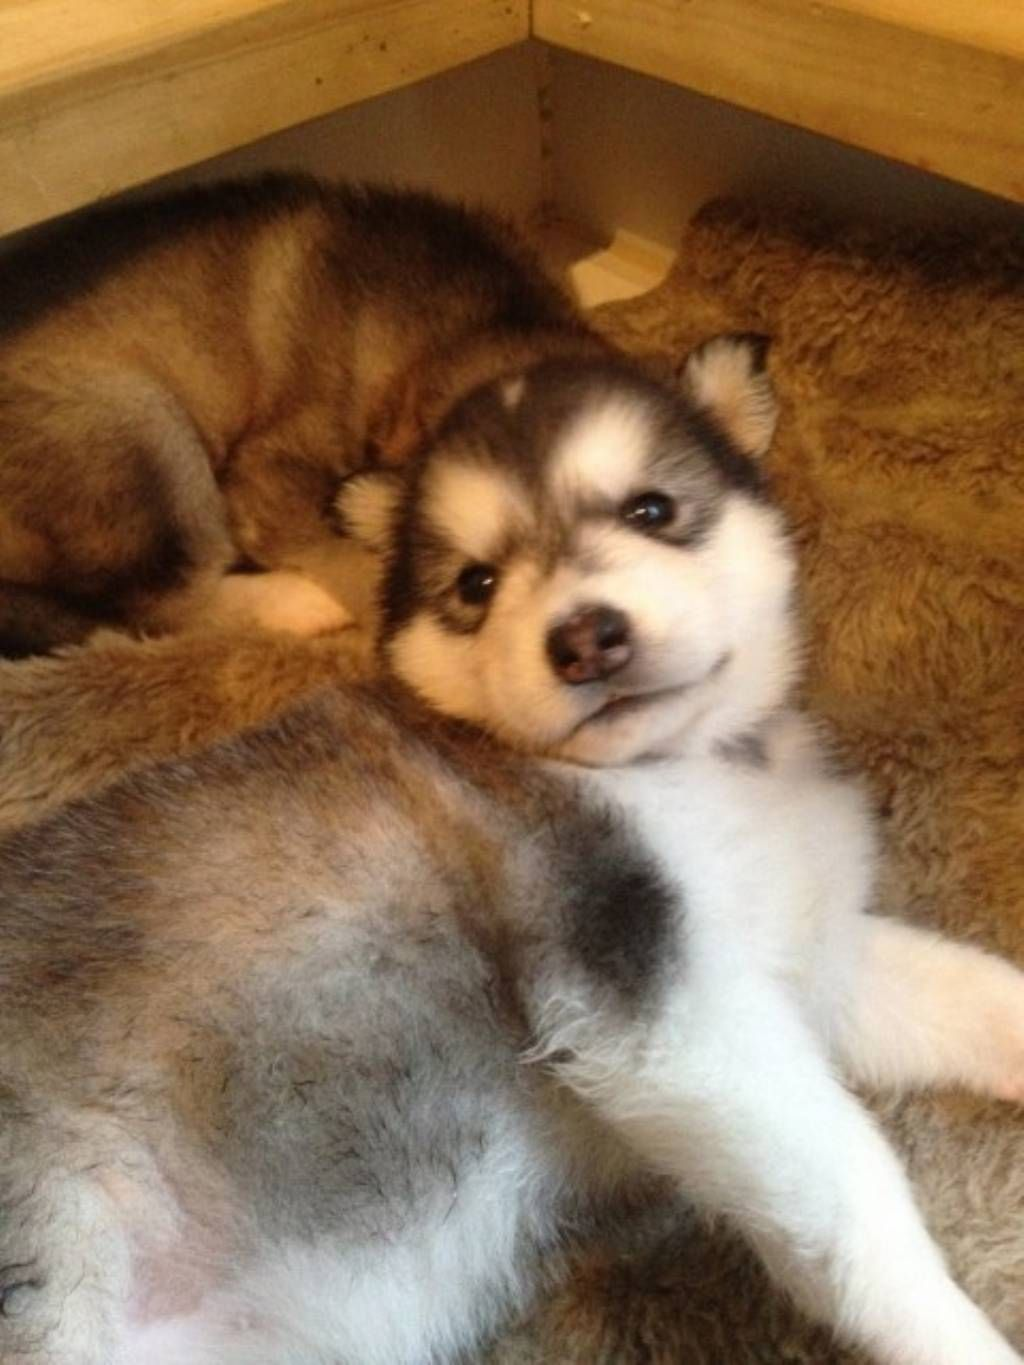 Alaskan Malamute Puppies For Sale Always Admire The Pug Puppies